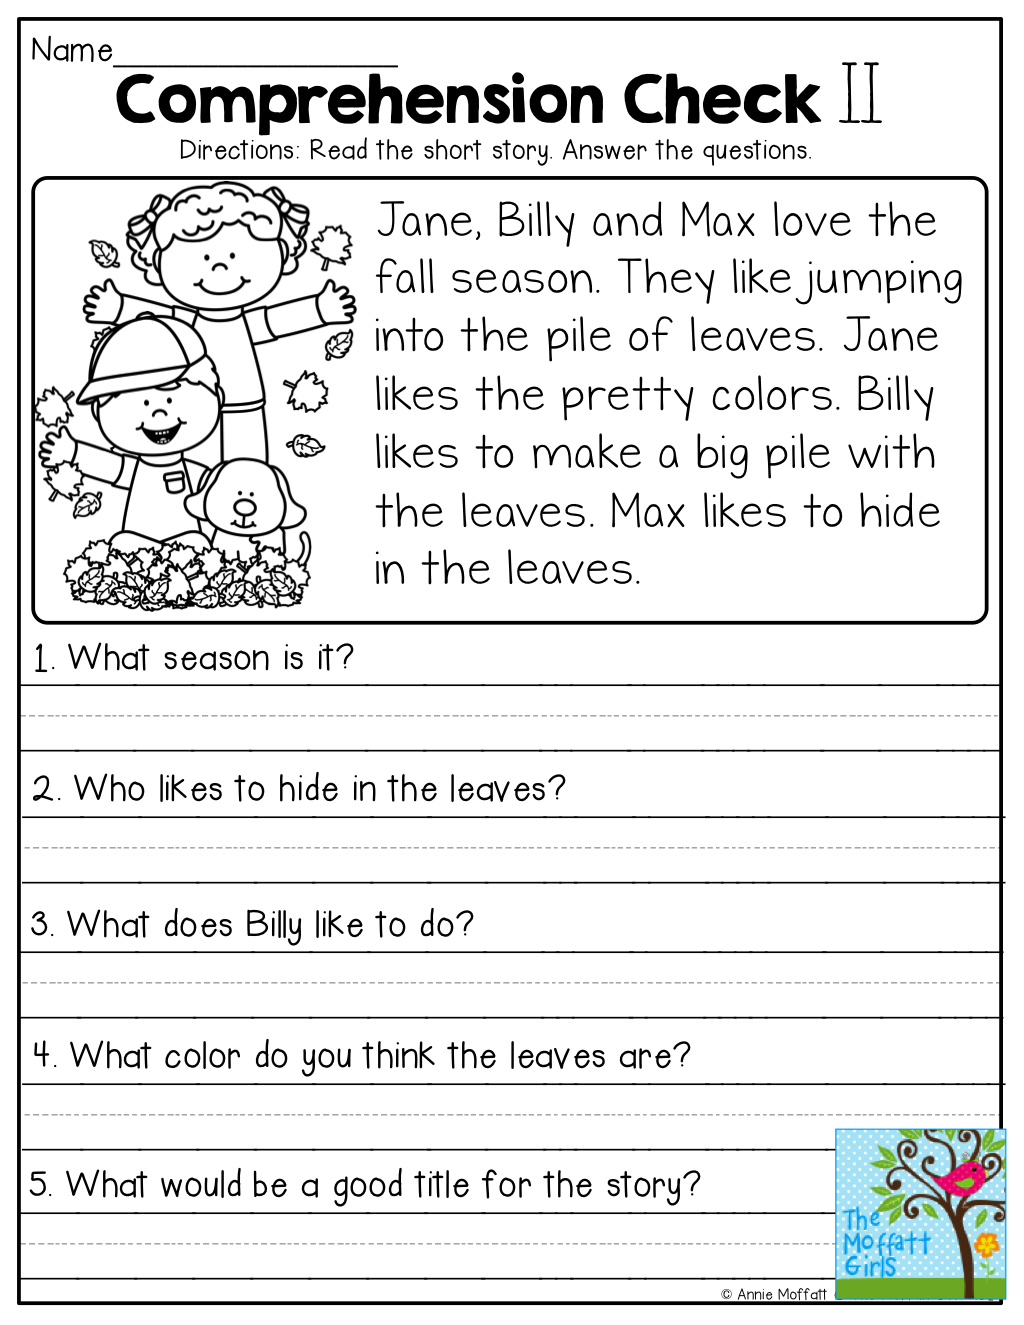 Worksheets Free First Grade Reading Comprehension Worksheets comprehension checks and so many more useful printables best of first grade pinterest reading comprehensio